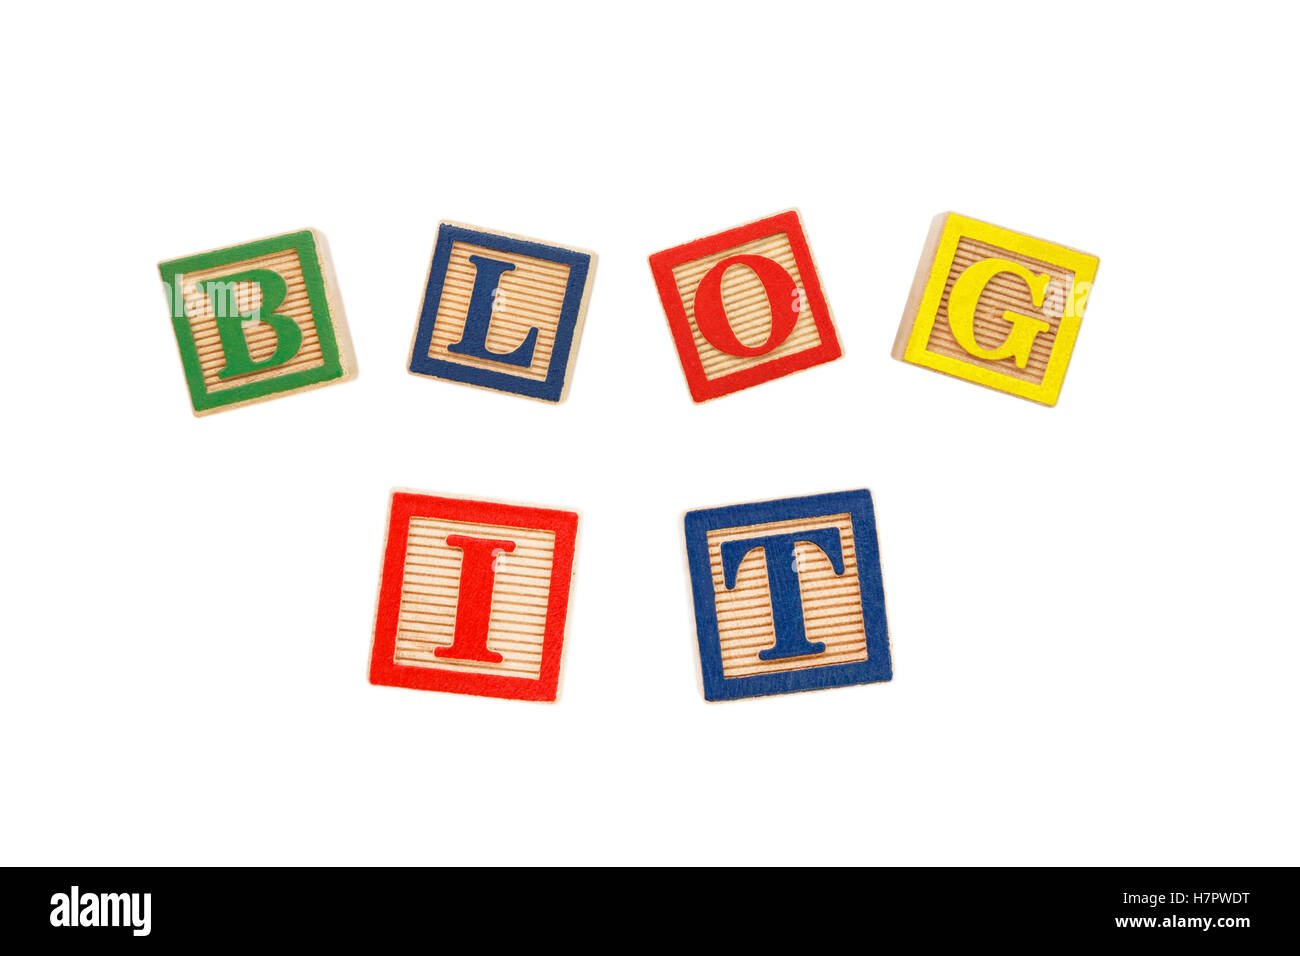 The words BLOG IT spelt with colourful letter blocks cut out on white - Stock Image